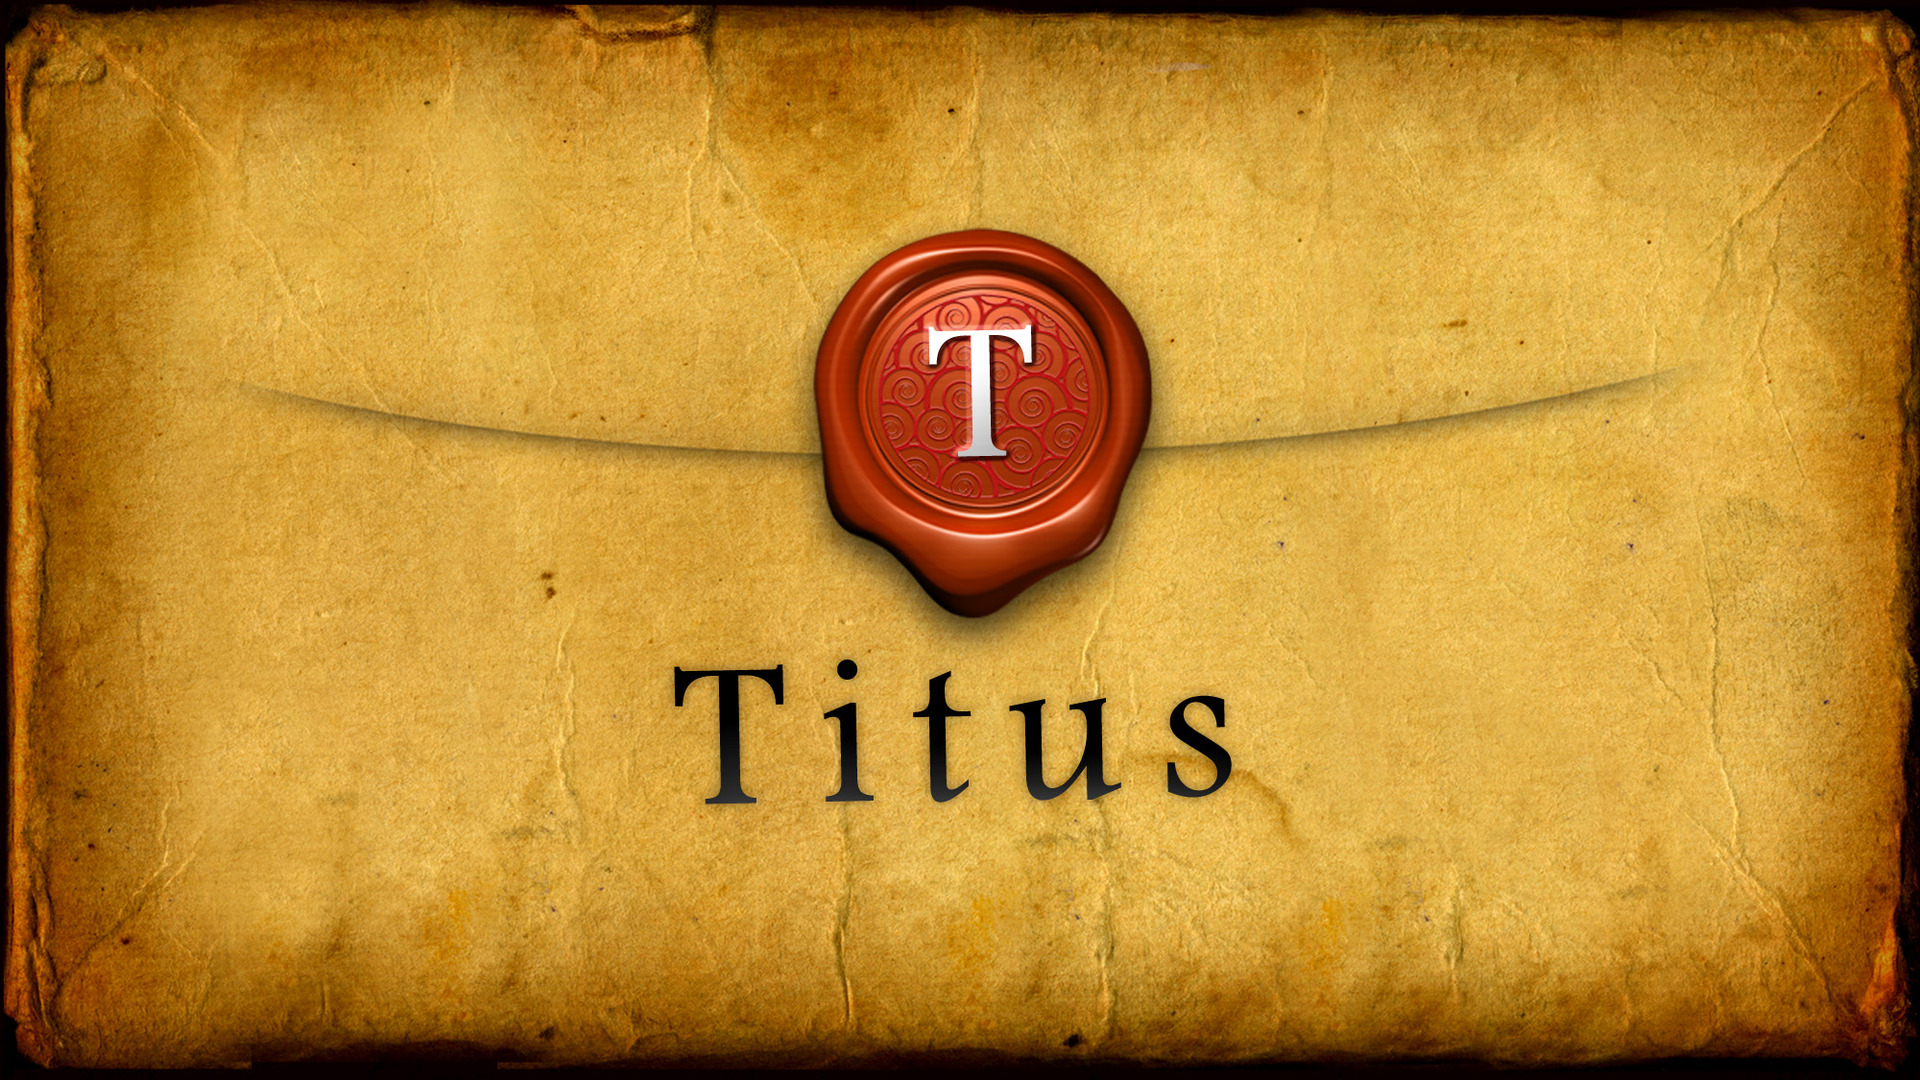 titus-title-1-Wide 16x9.jpg